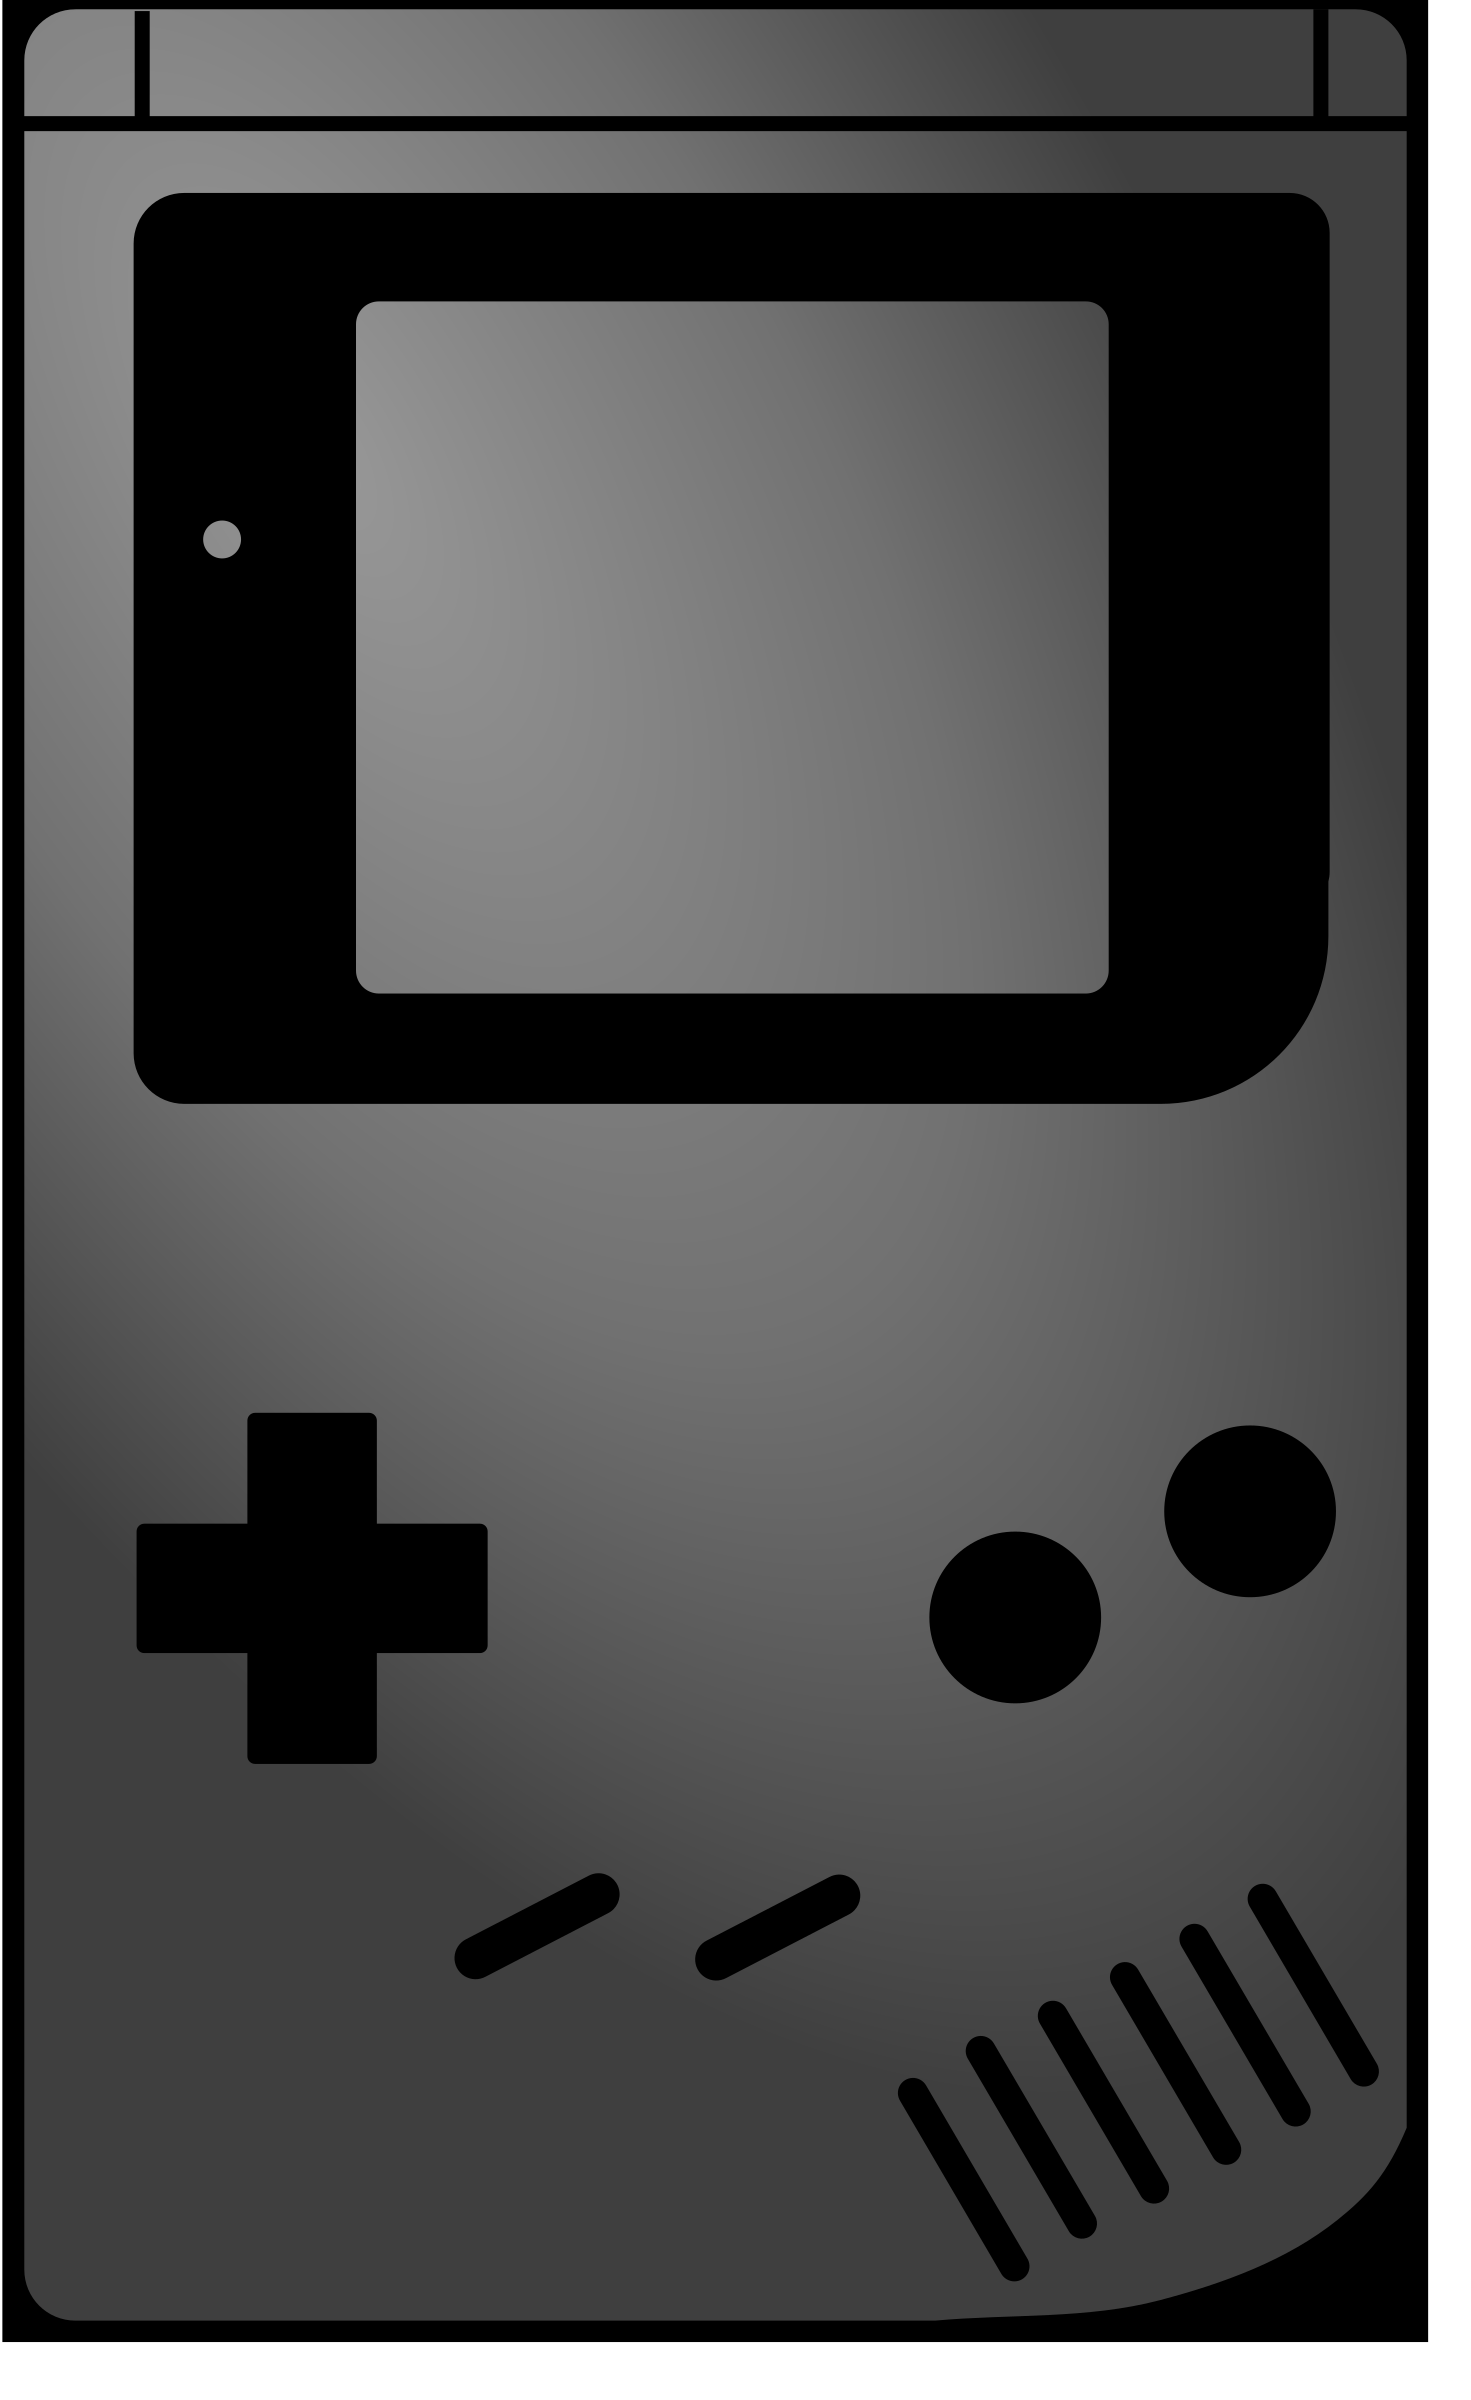 gameboy icon style by vexar